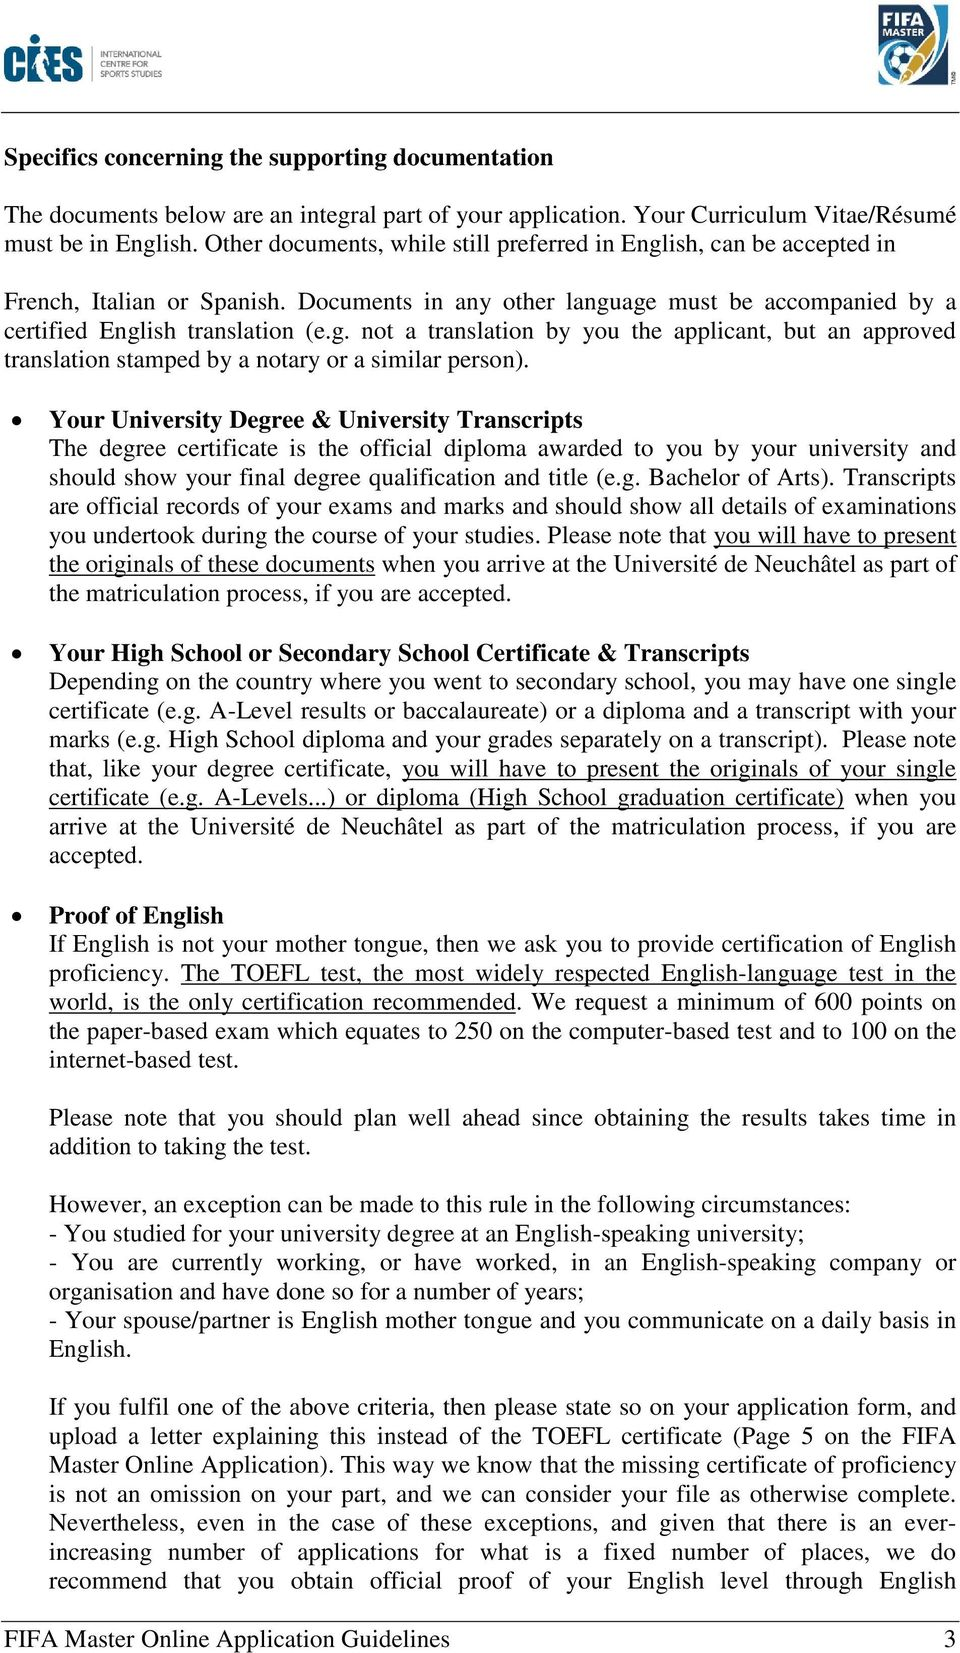 Your University Degree & University Transcripts The degree certificate is the official diploma awarded to you by your university and should show your final degree qualification and title (e.g. Bachelor of Arts).